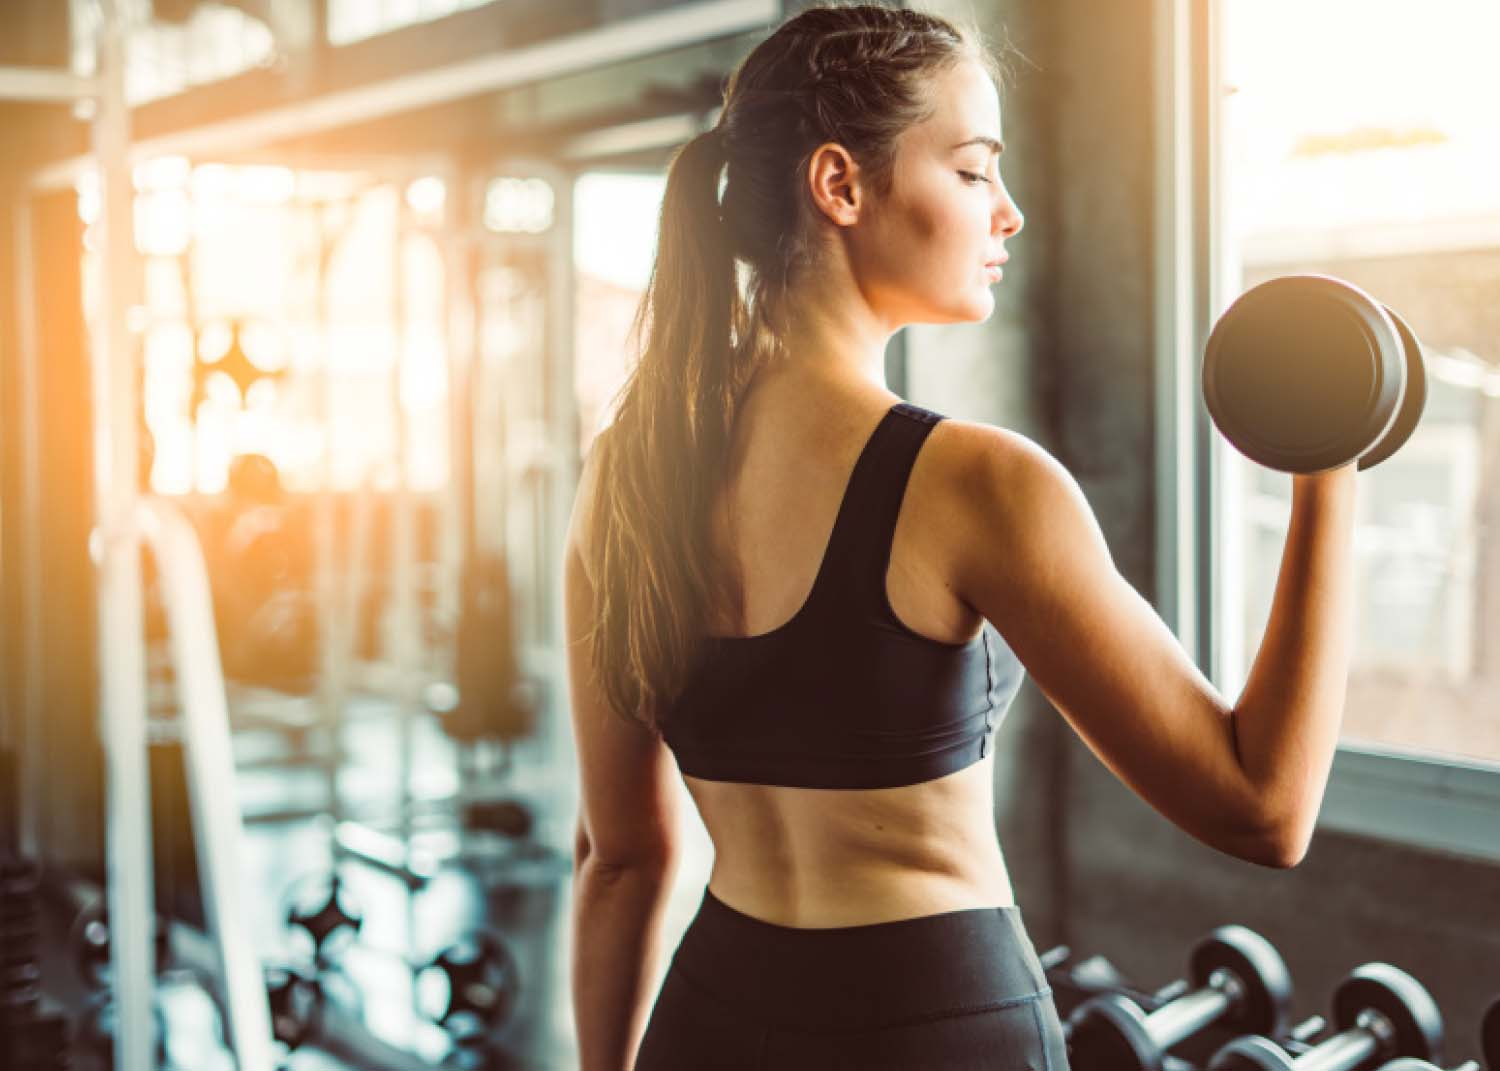 Envisagym Personal Training Gym Ranelagh Dublin From €139 Per Month Sustainable Weight Loss Girl With Dumbbell